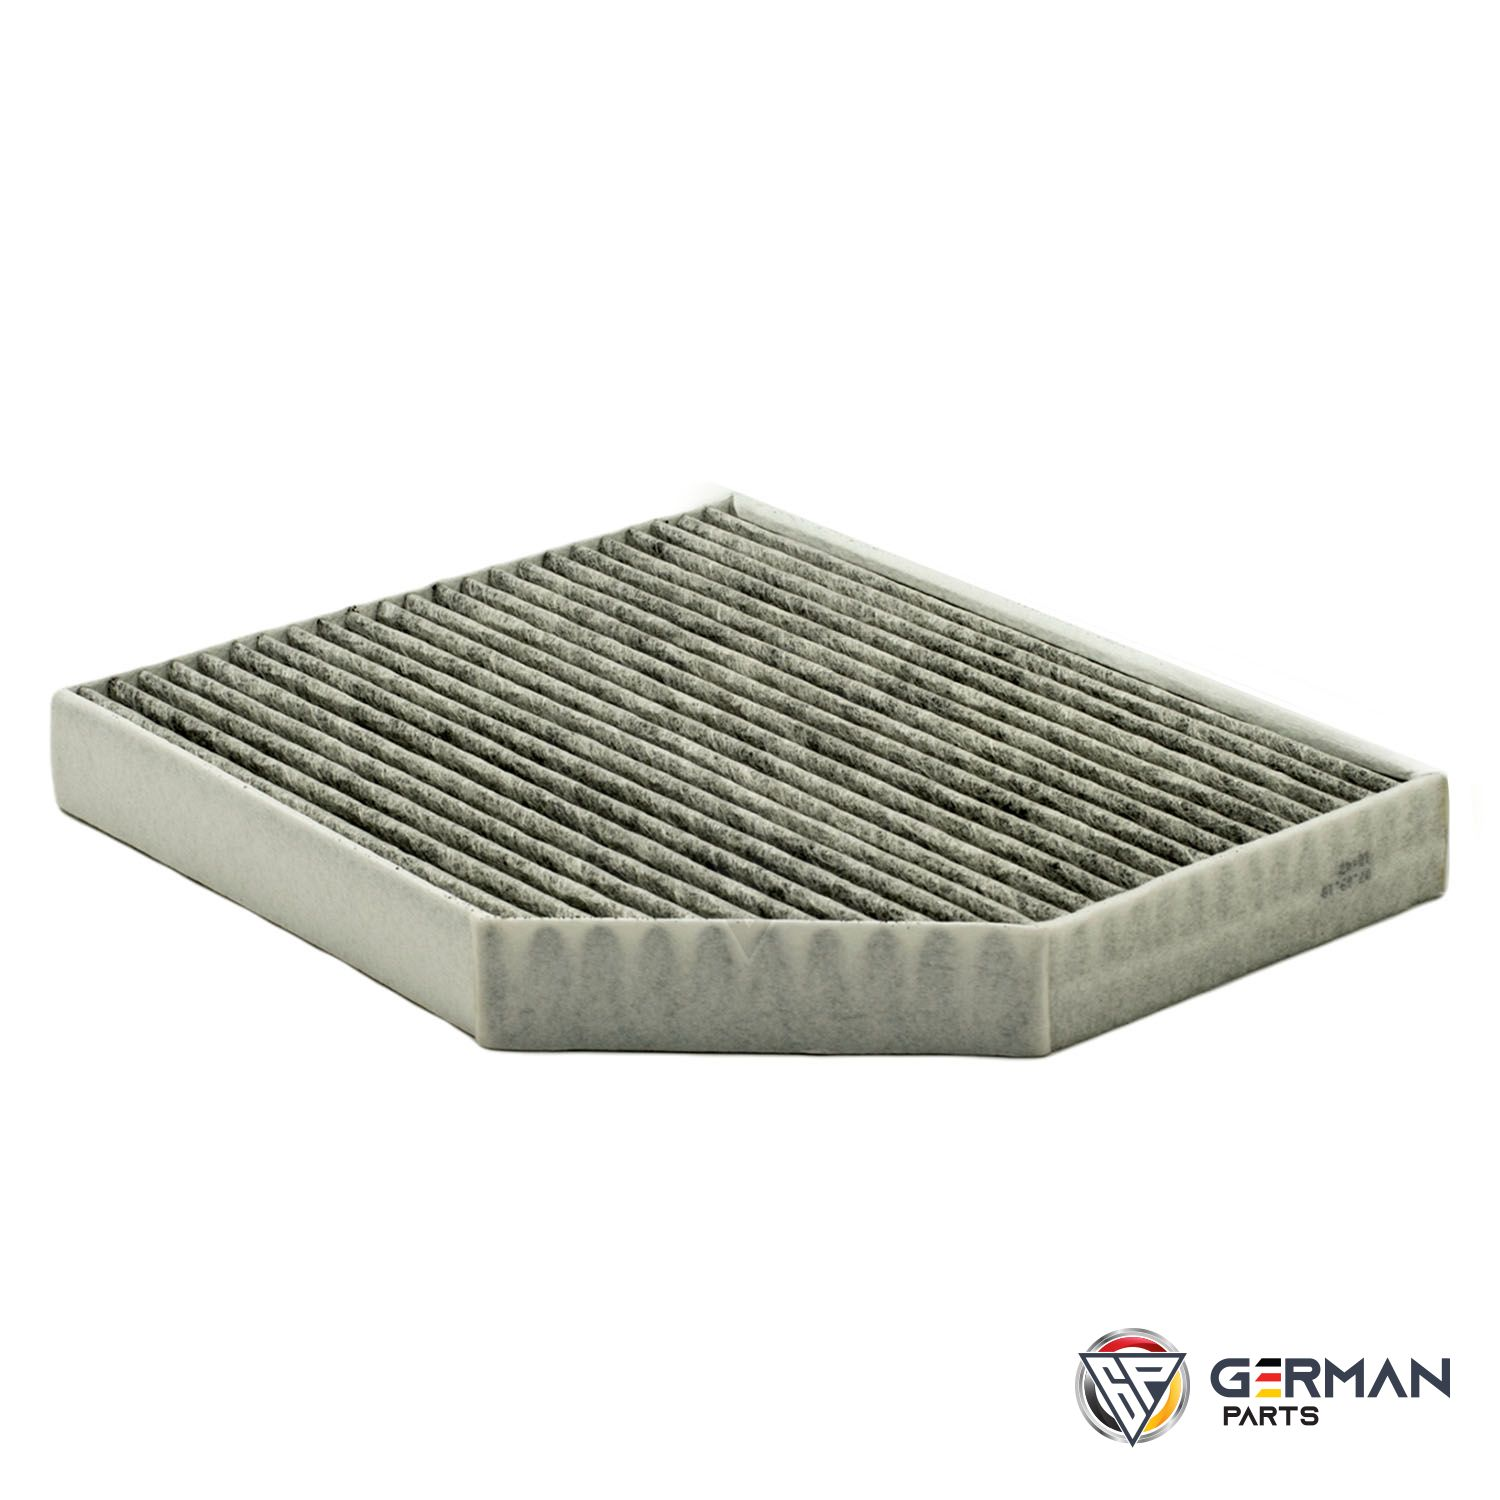 Buy Genuine Audi/Volkswagen Ac Dust Filter 8K0819439B - German Parts